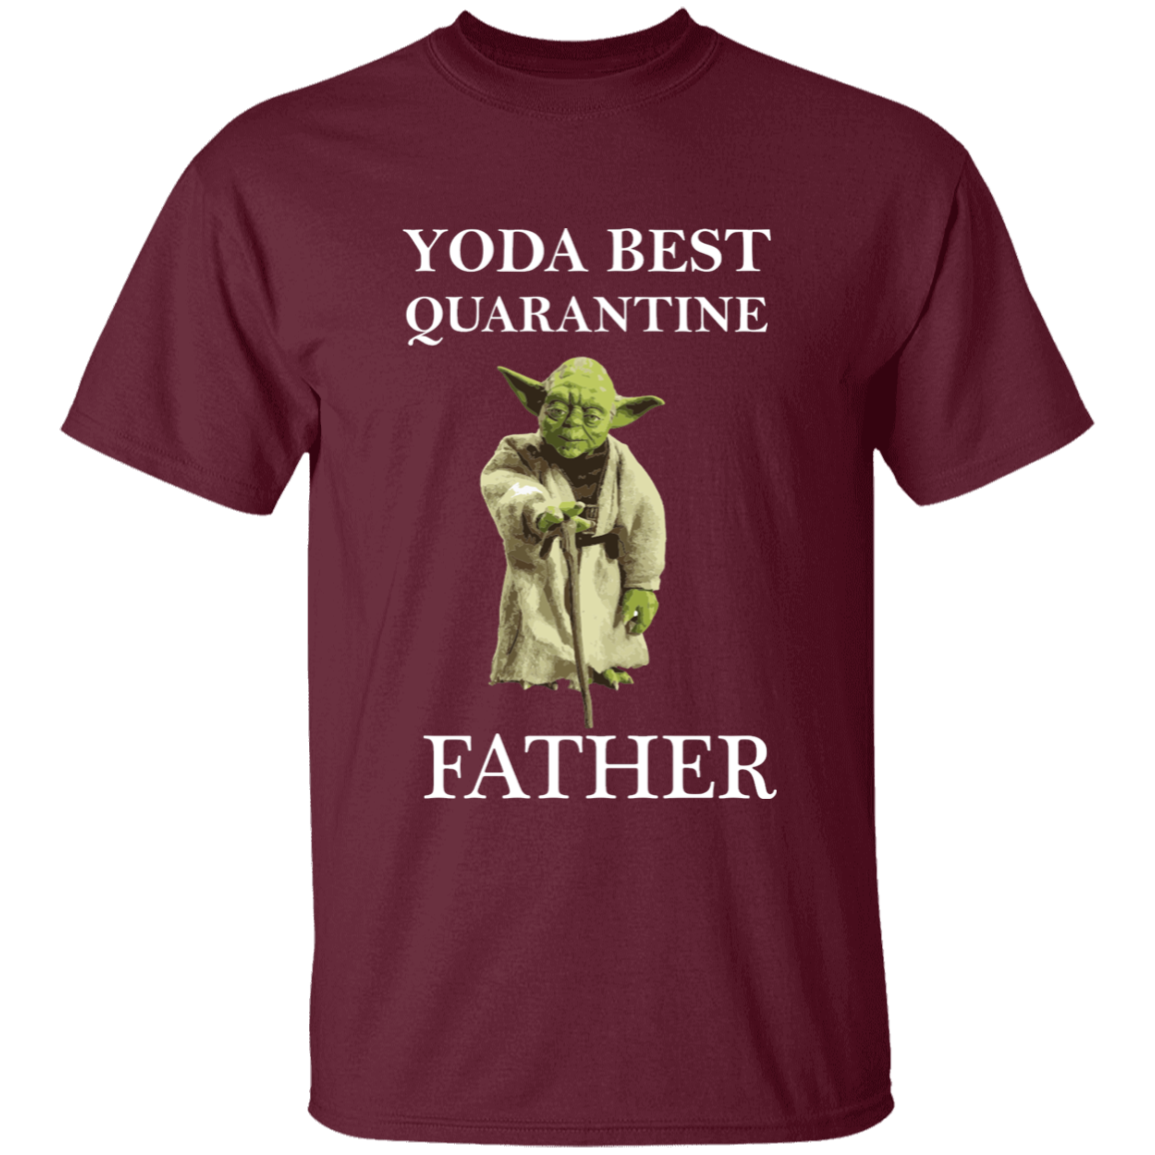 Yoda Best Quarantine Father T-Shirt